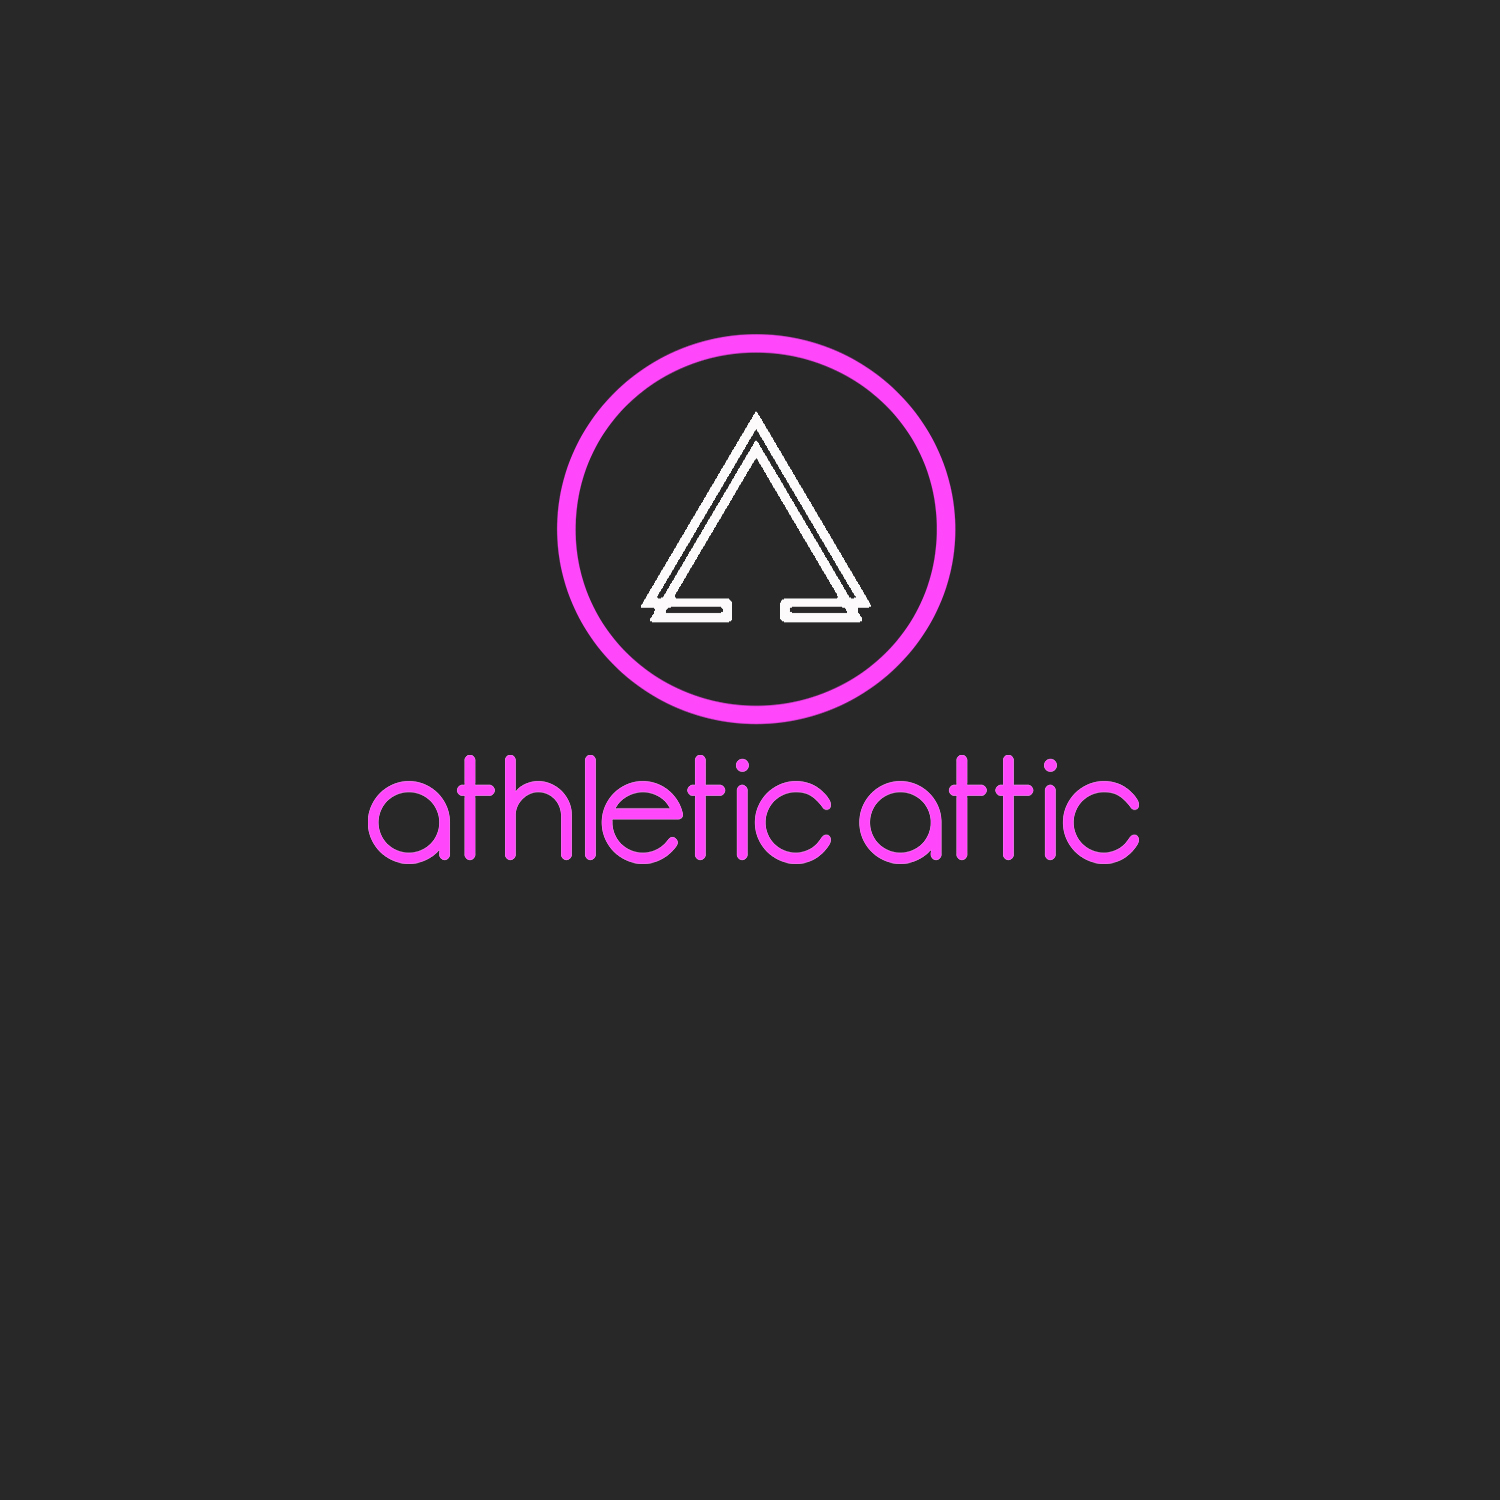 Logo Design by YANUAR ANTABUA - Entry No. 87 in the Logo Design Contest Fun Logo Design for Athletic Attic.